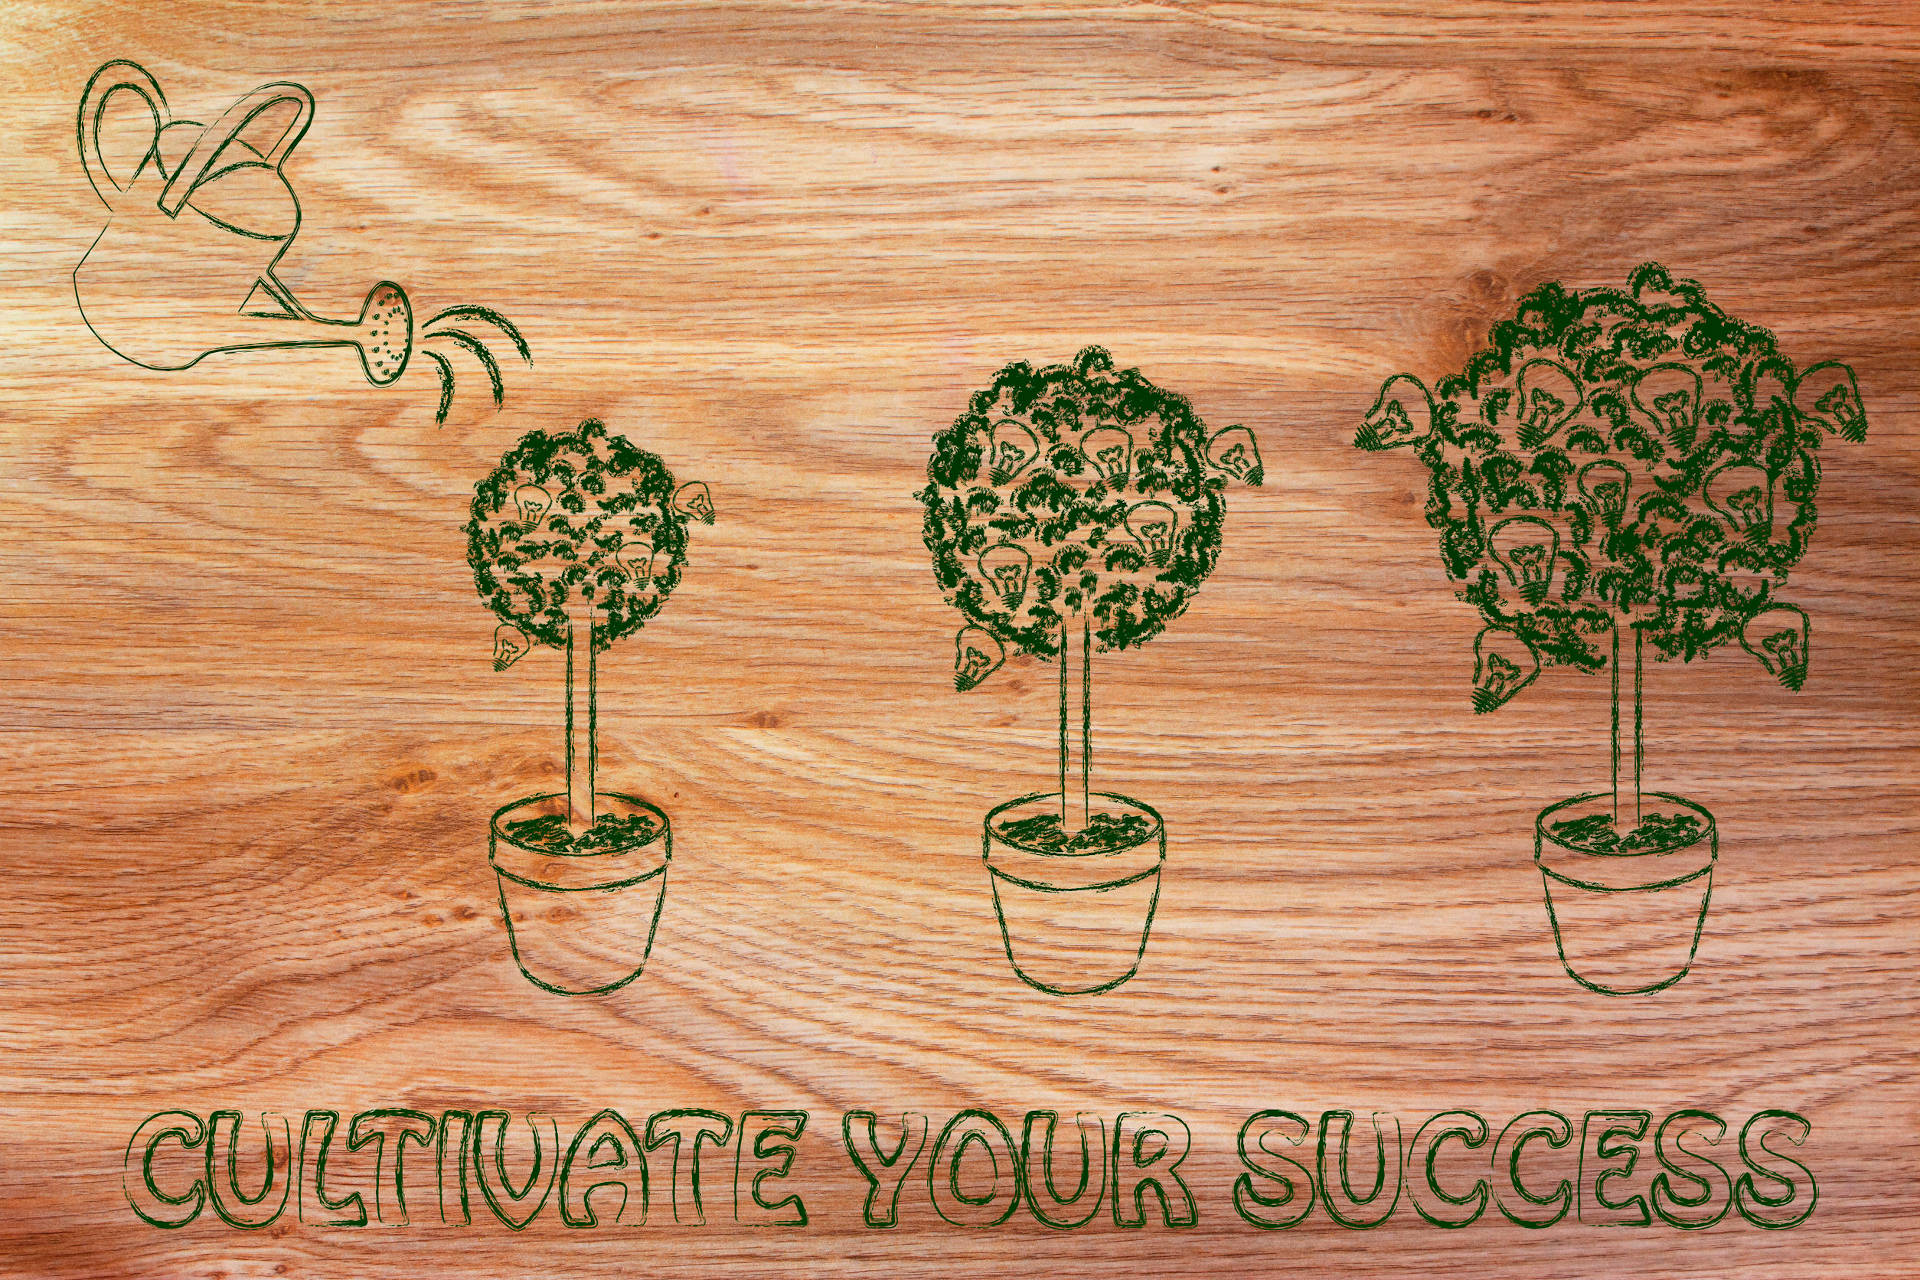 cultivate your success